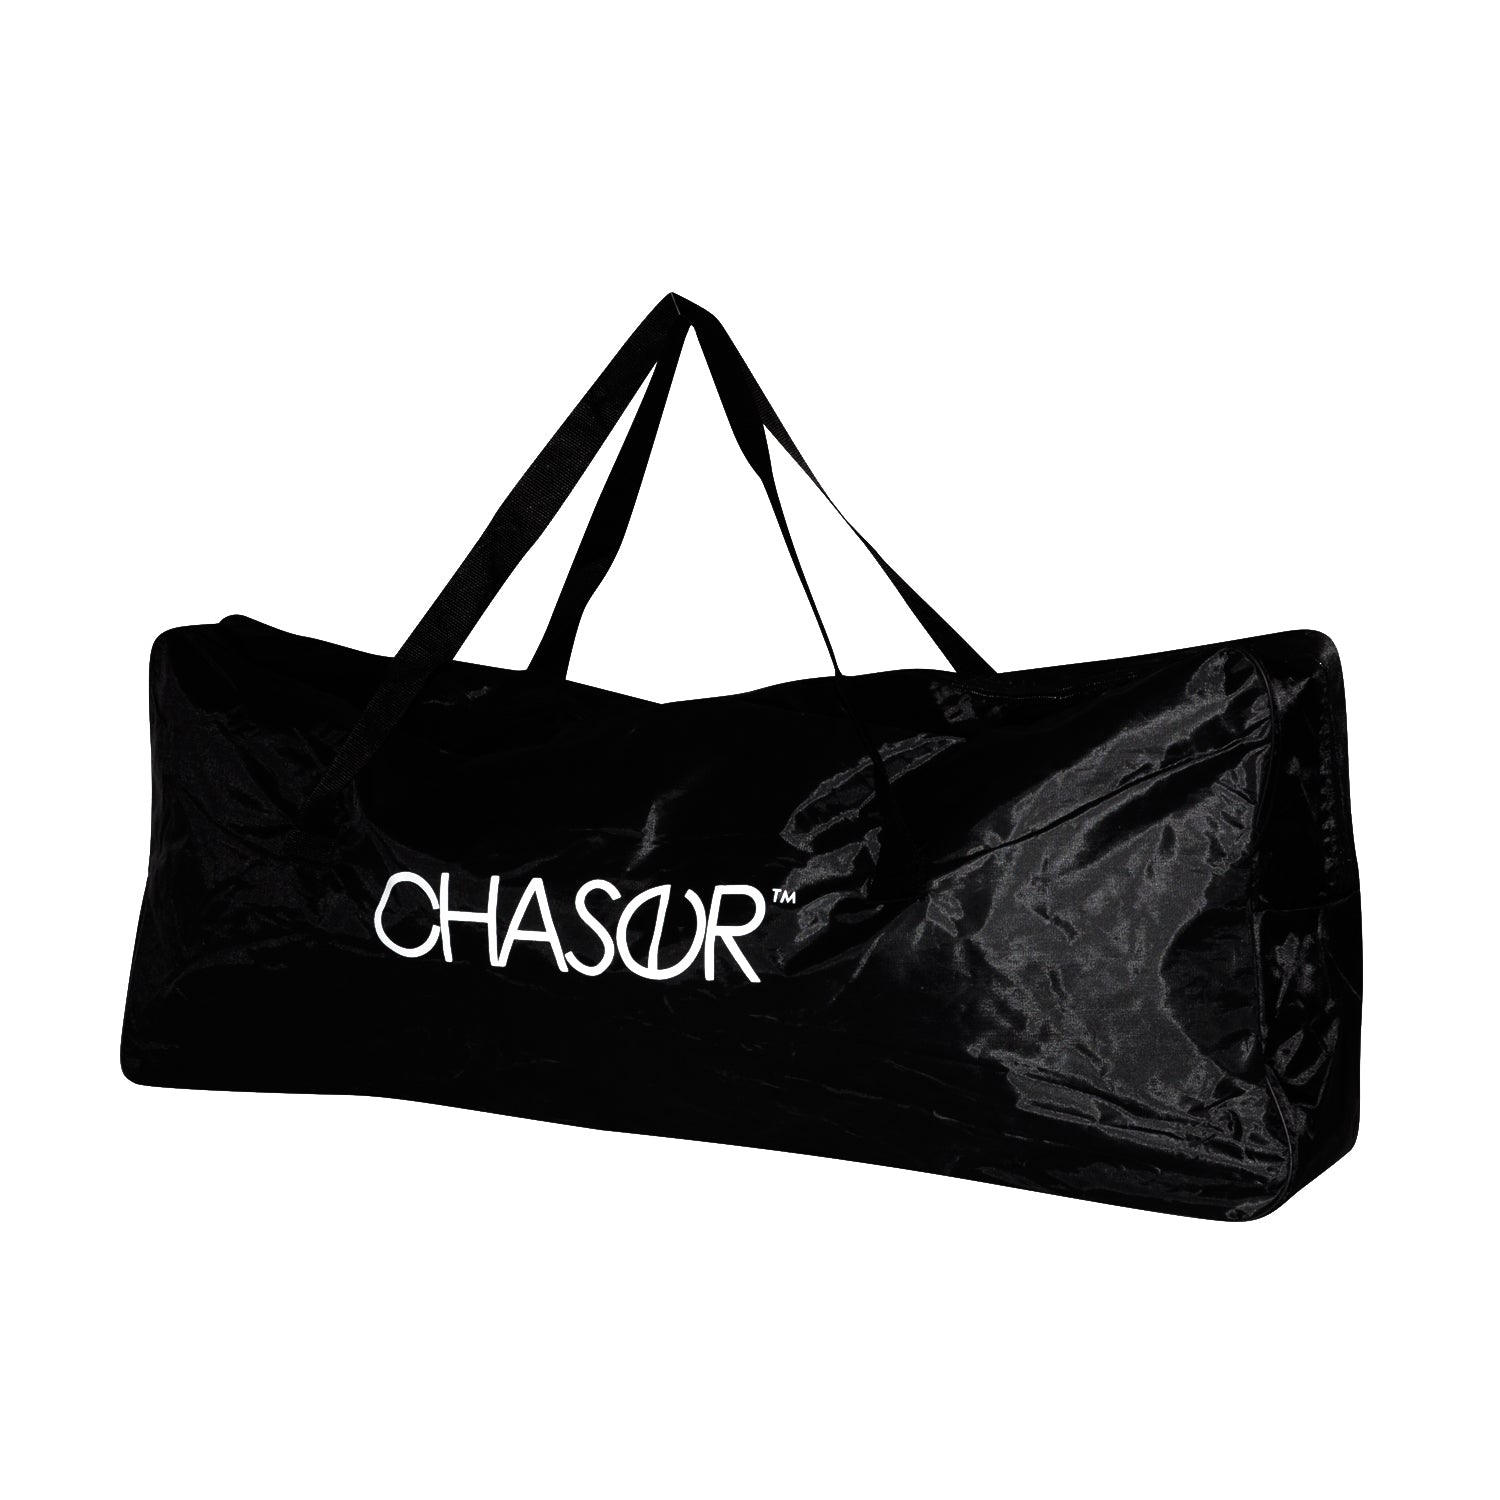 Chaser X1 Kick Scooter Bag